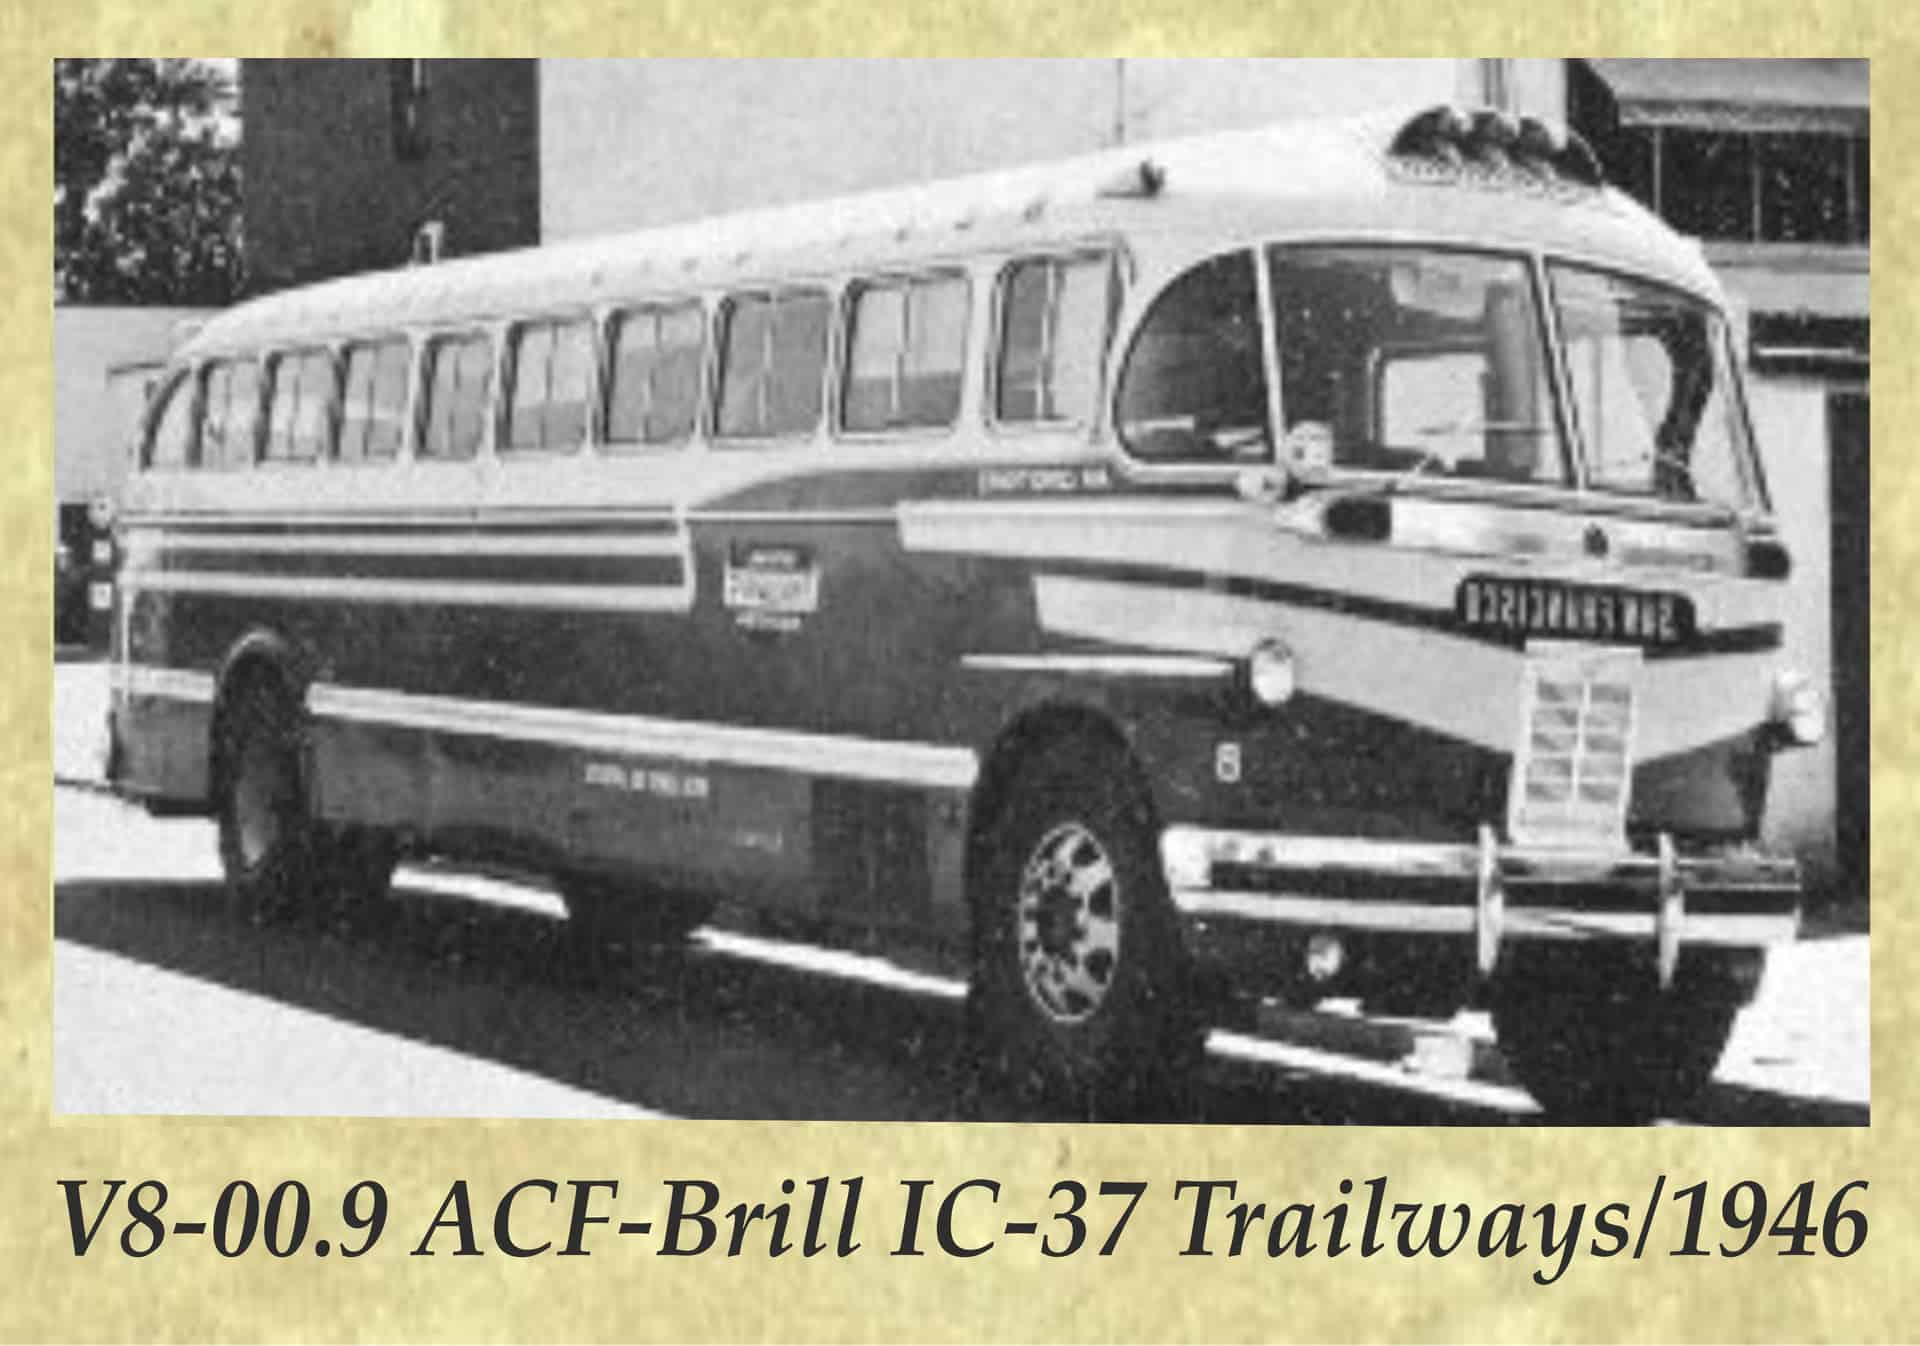 V8-00.9 ACF-Brill IC-37 Trailways_1946